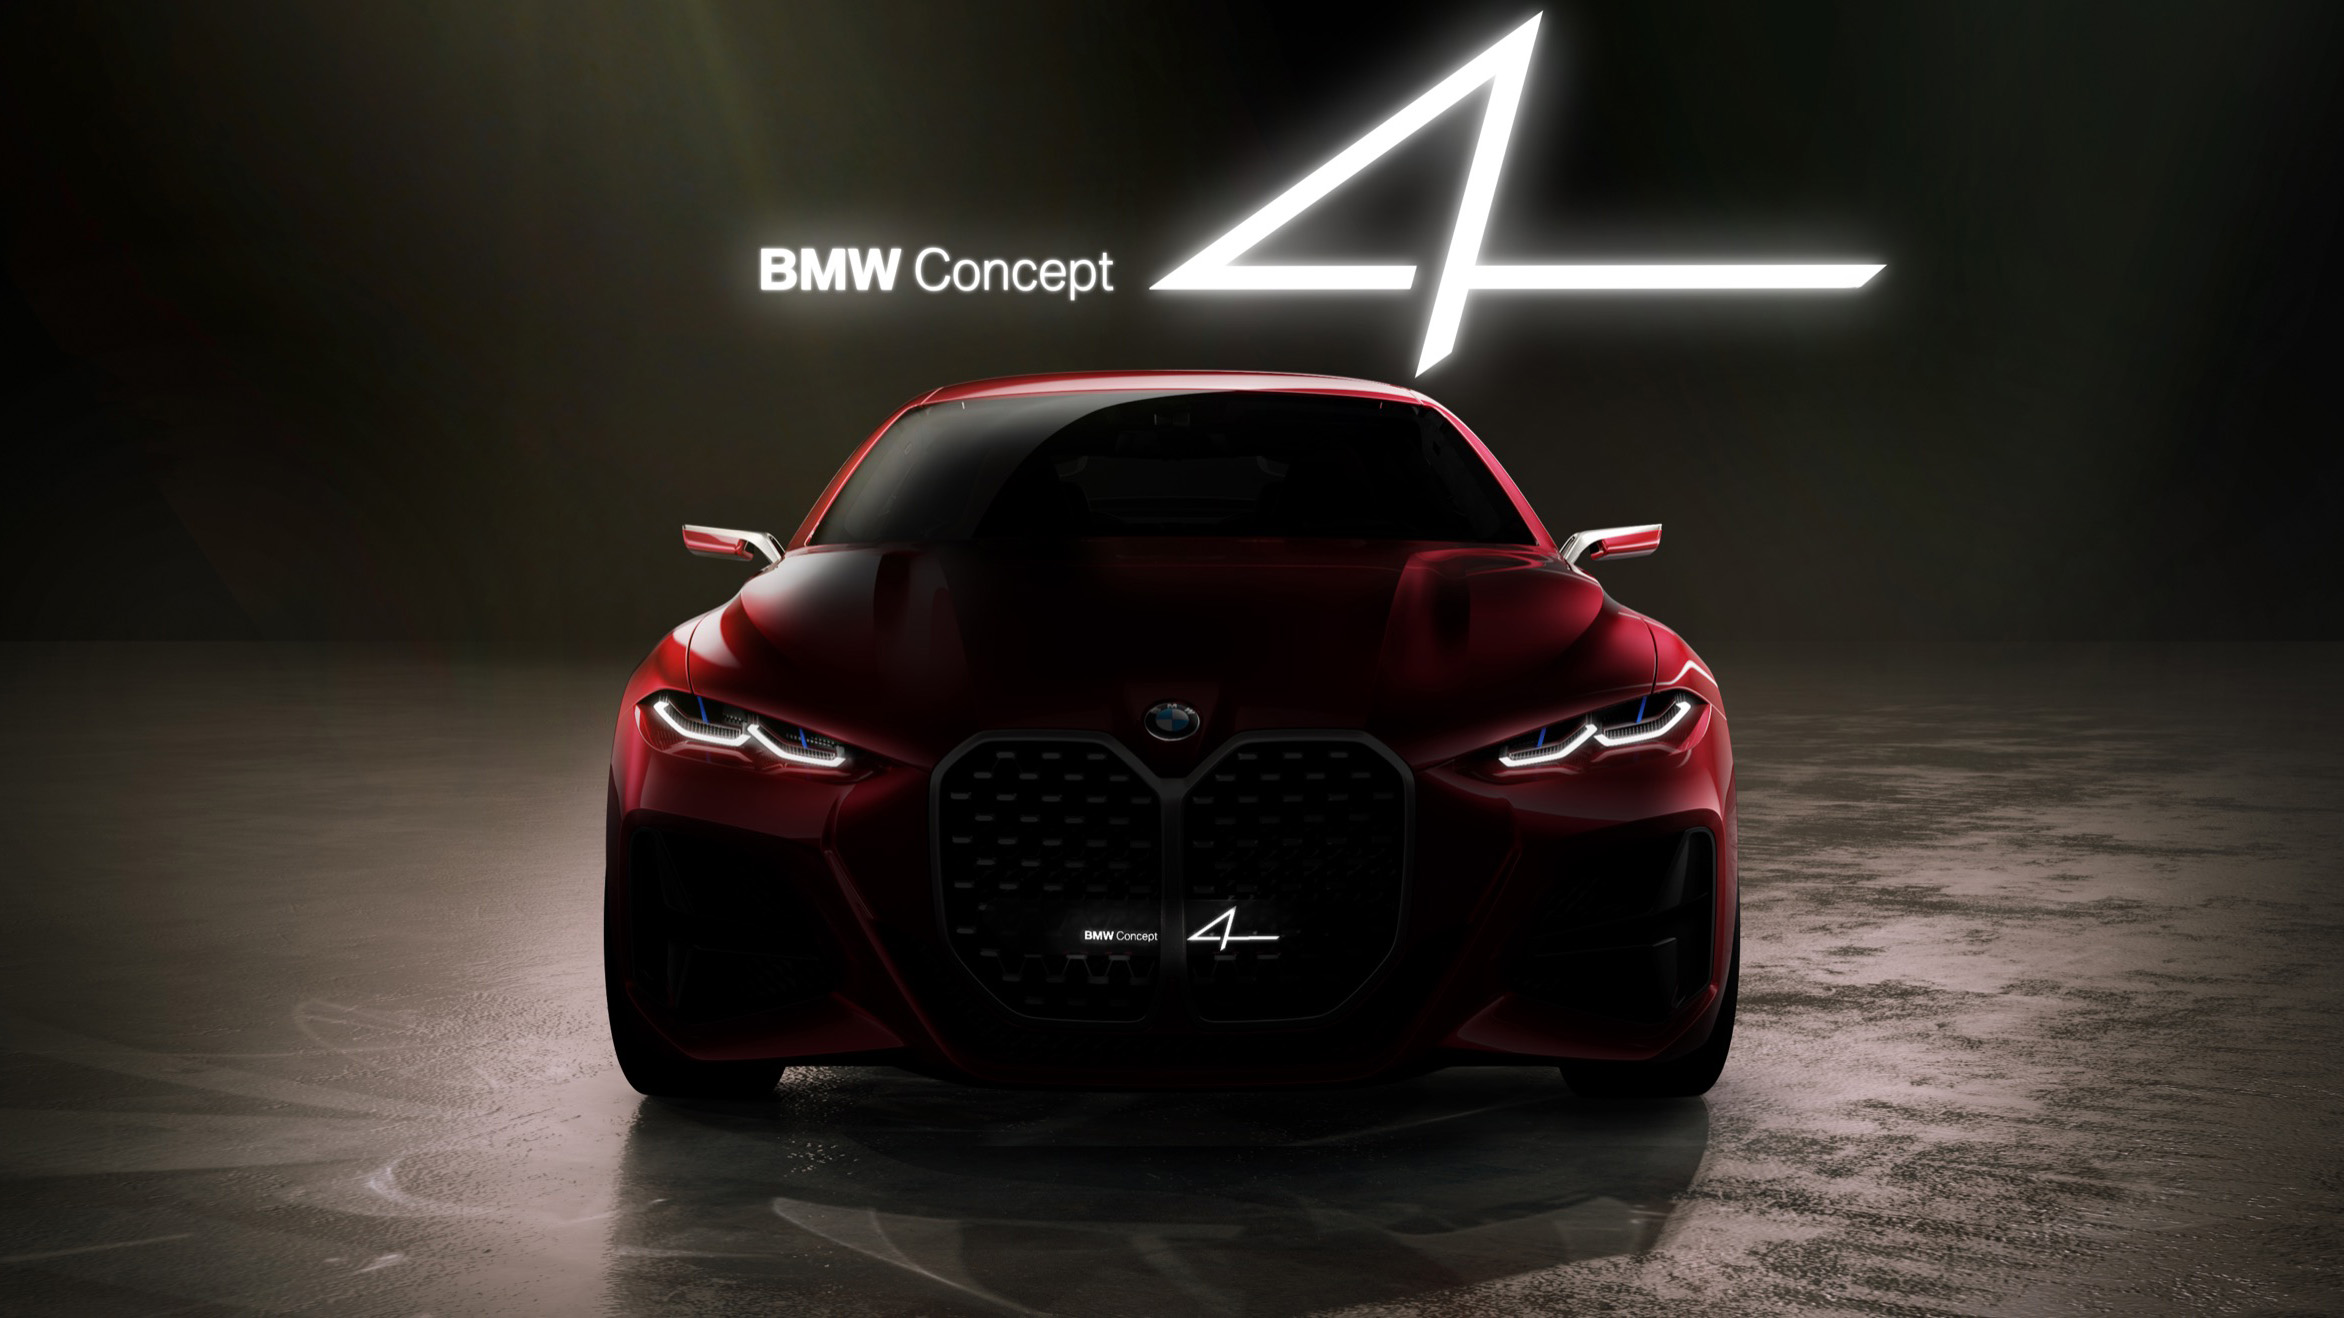 BMW won't backpedal on controversial design language